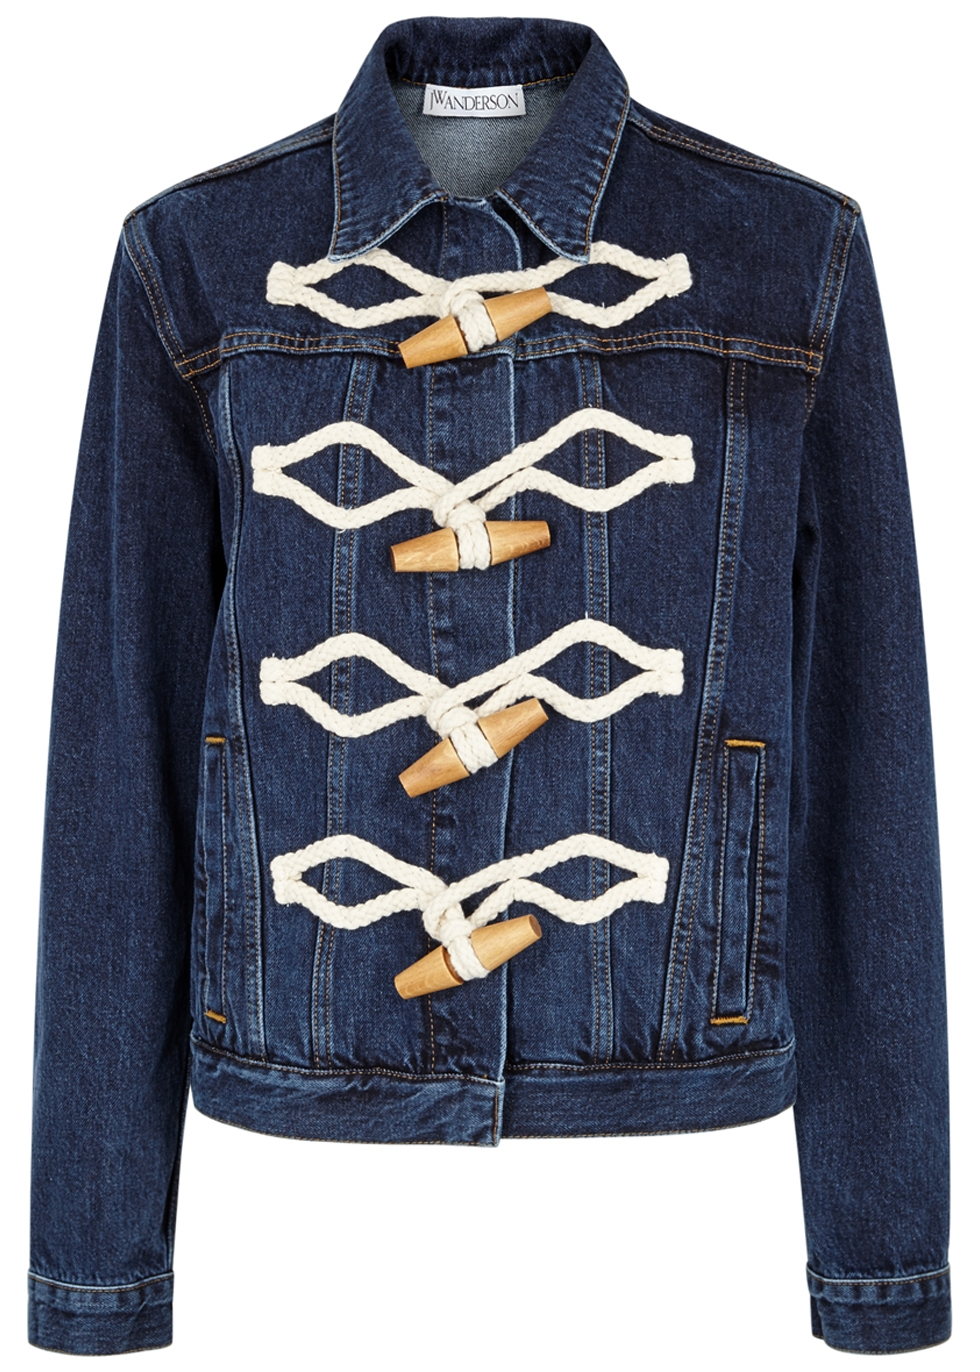 J.W.ANDERSON DARK BLUE DENIM JACKET